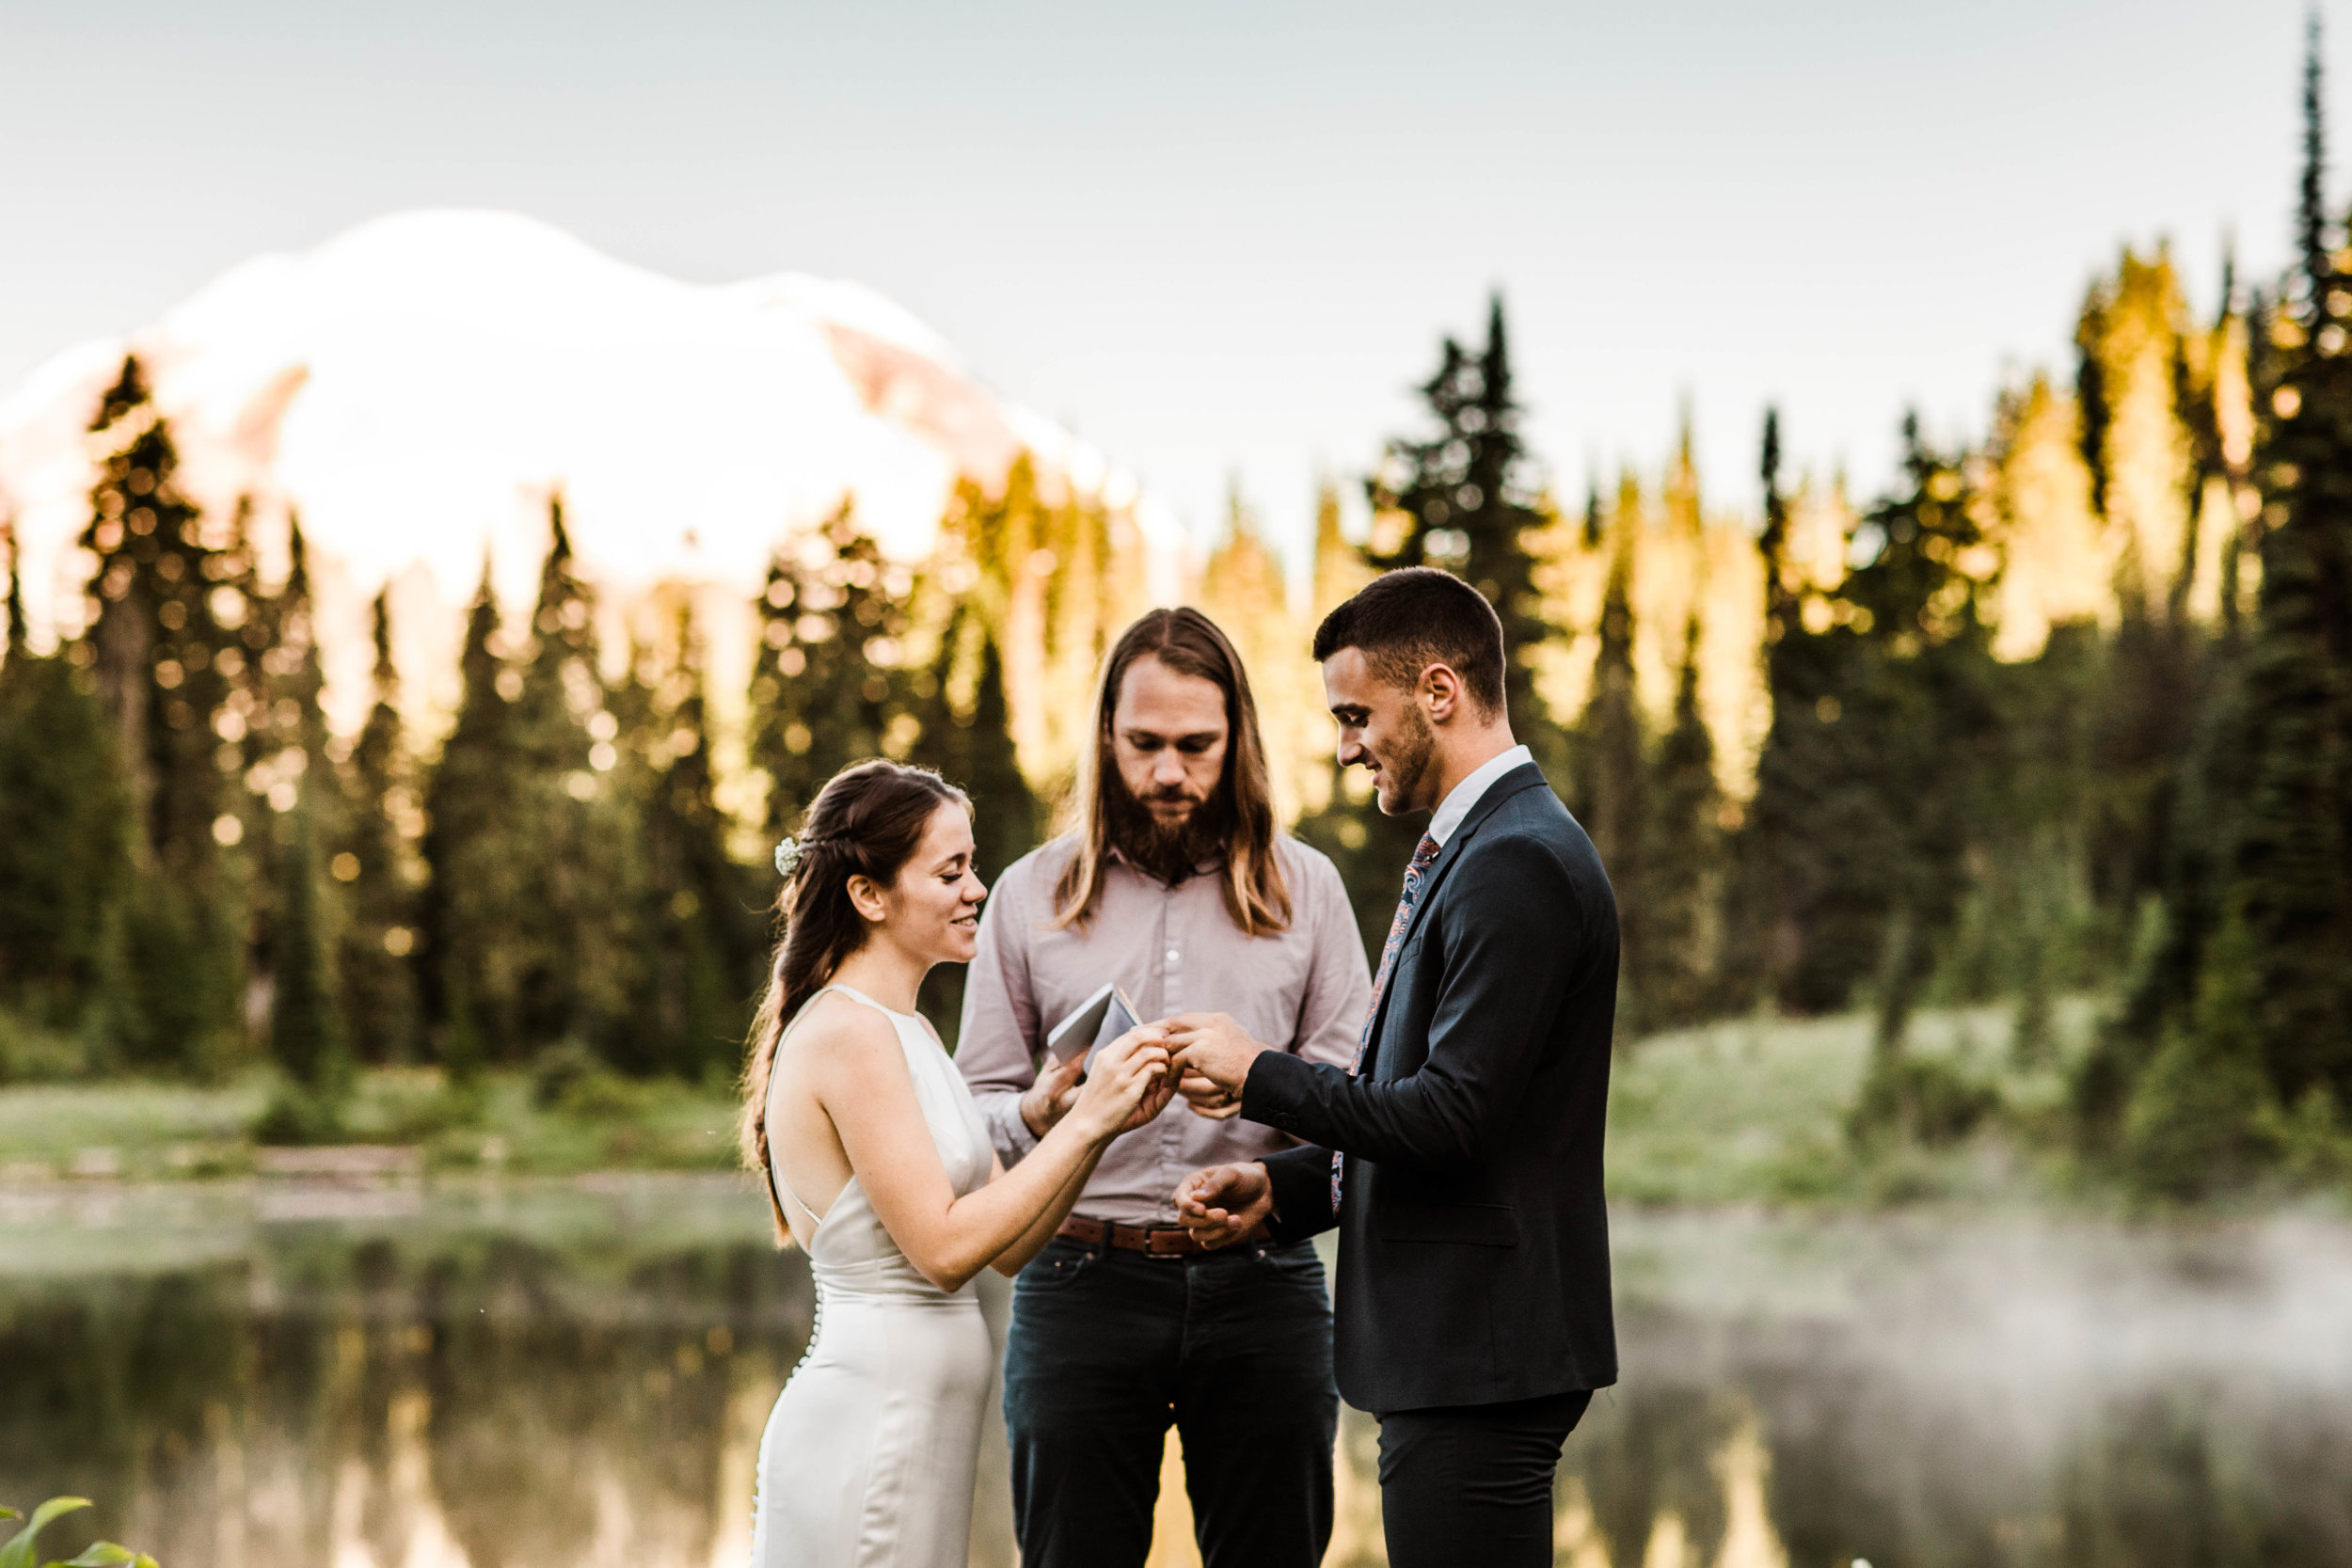 ring exchange during elopement ceremony in Mount Rainier | national park elopement photographers in Seattle Washington